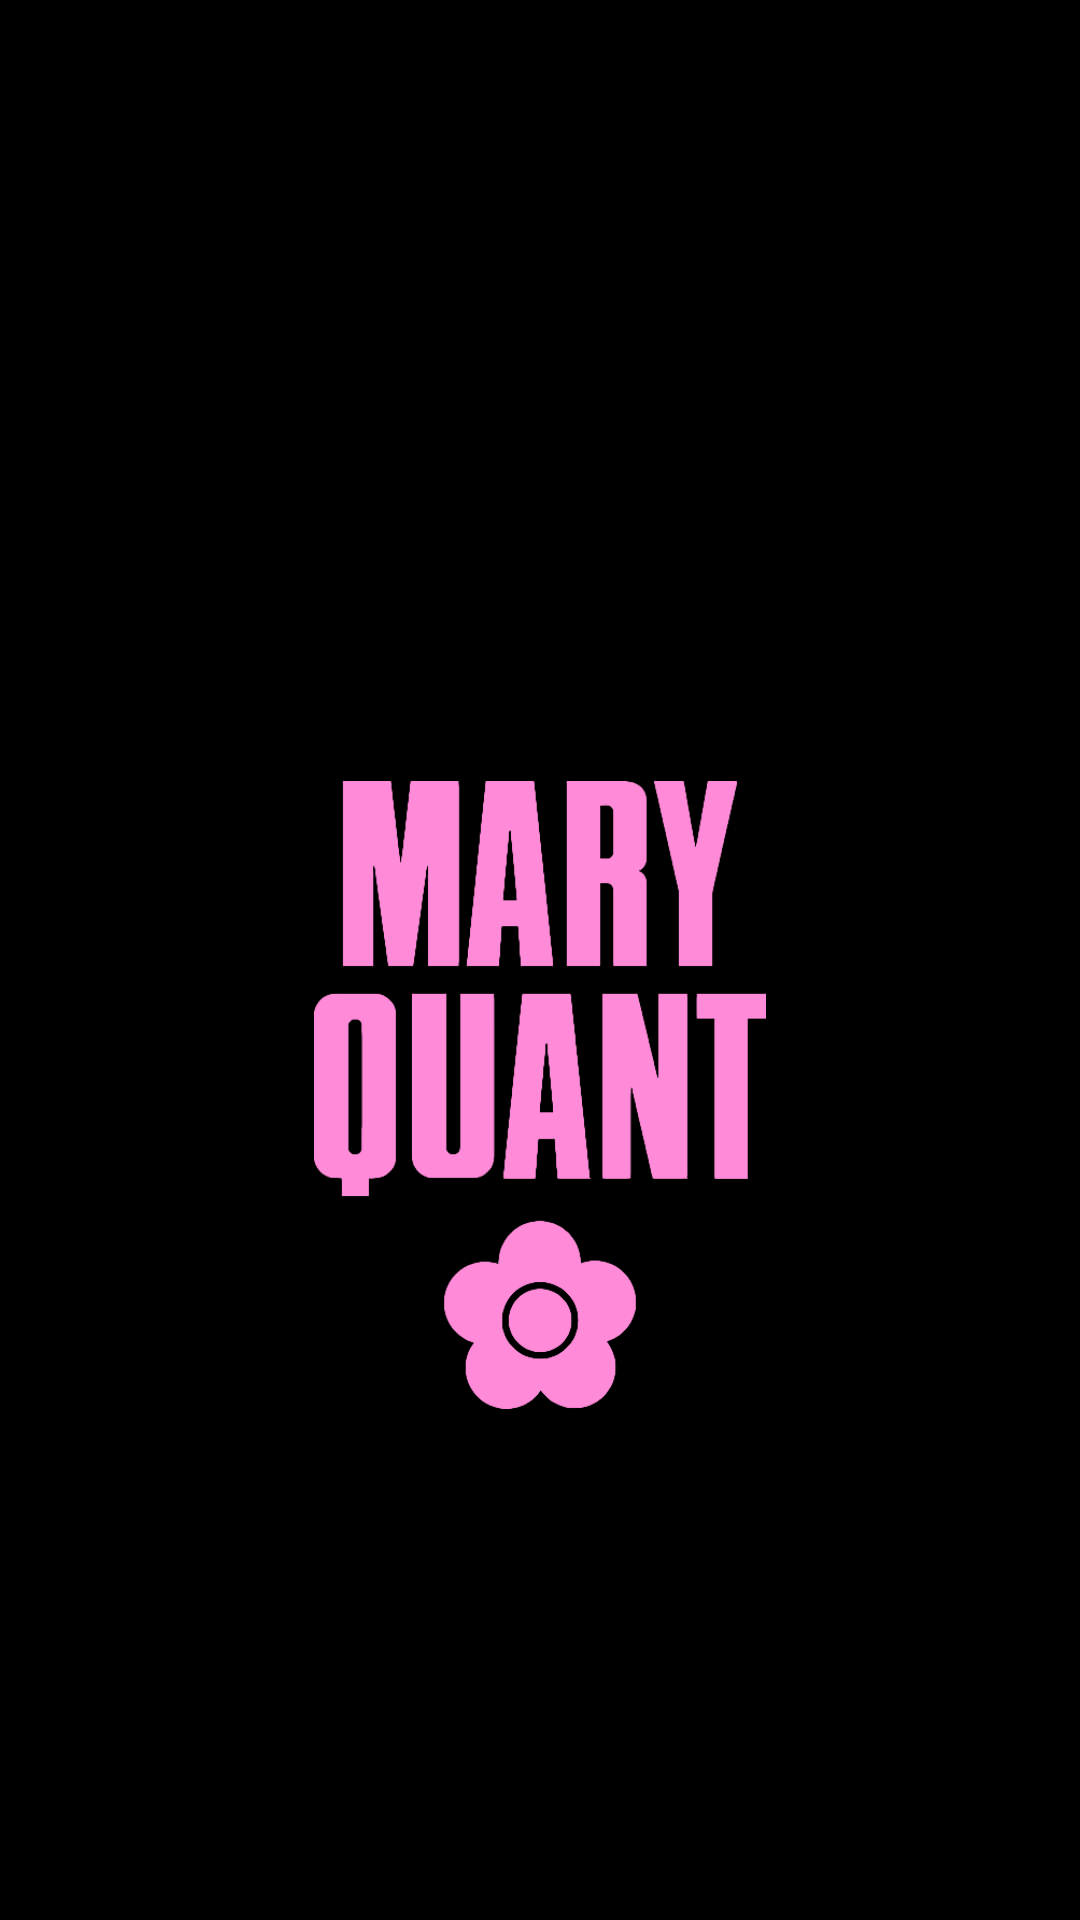 maryquant i06 - 20 MARY QUANT HQ Smartphone Wallpaper Collection